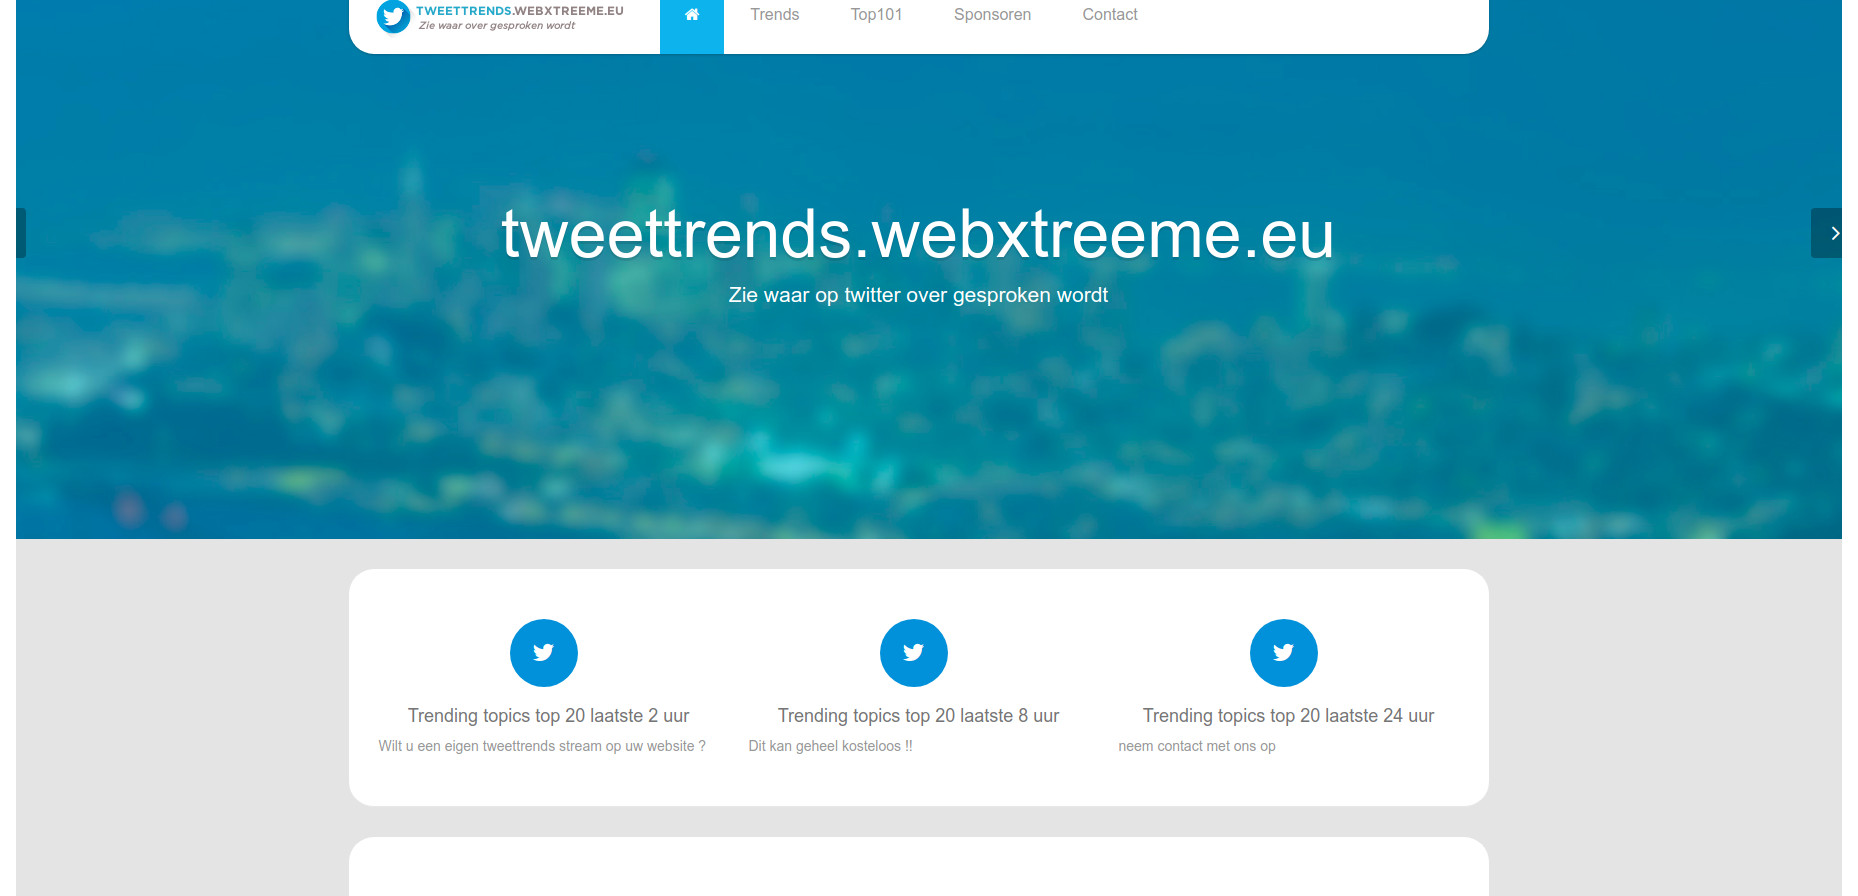 screenshot www.tweettrends.webxtreeme.eu